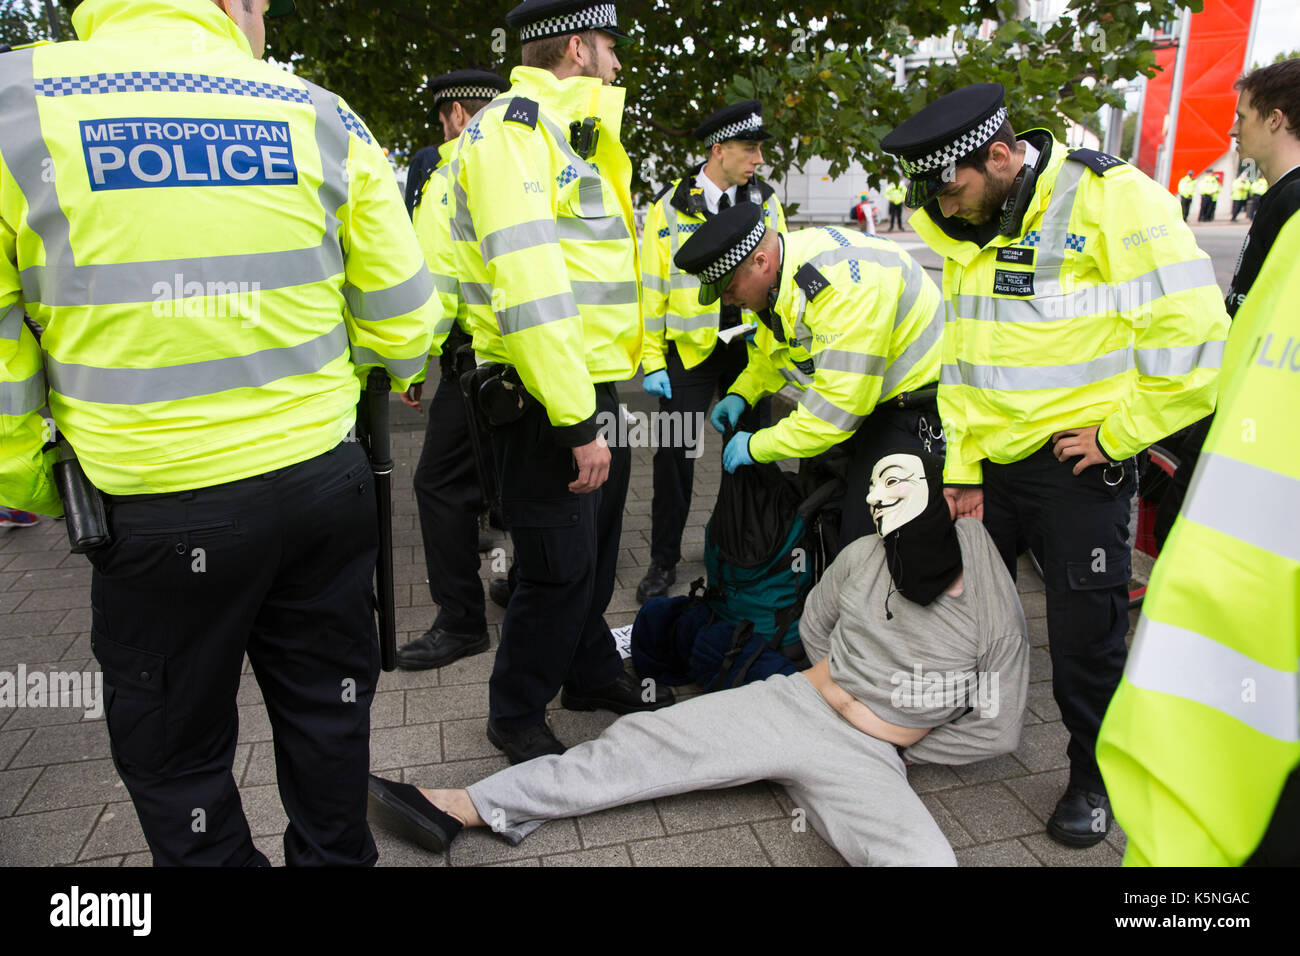 London, UK. 9th September, 2017. Police officers stop and search a man wearing a Guy Fawkes mask during a protest Stock Photo